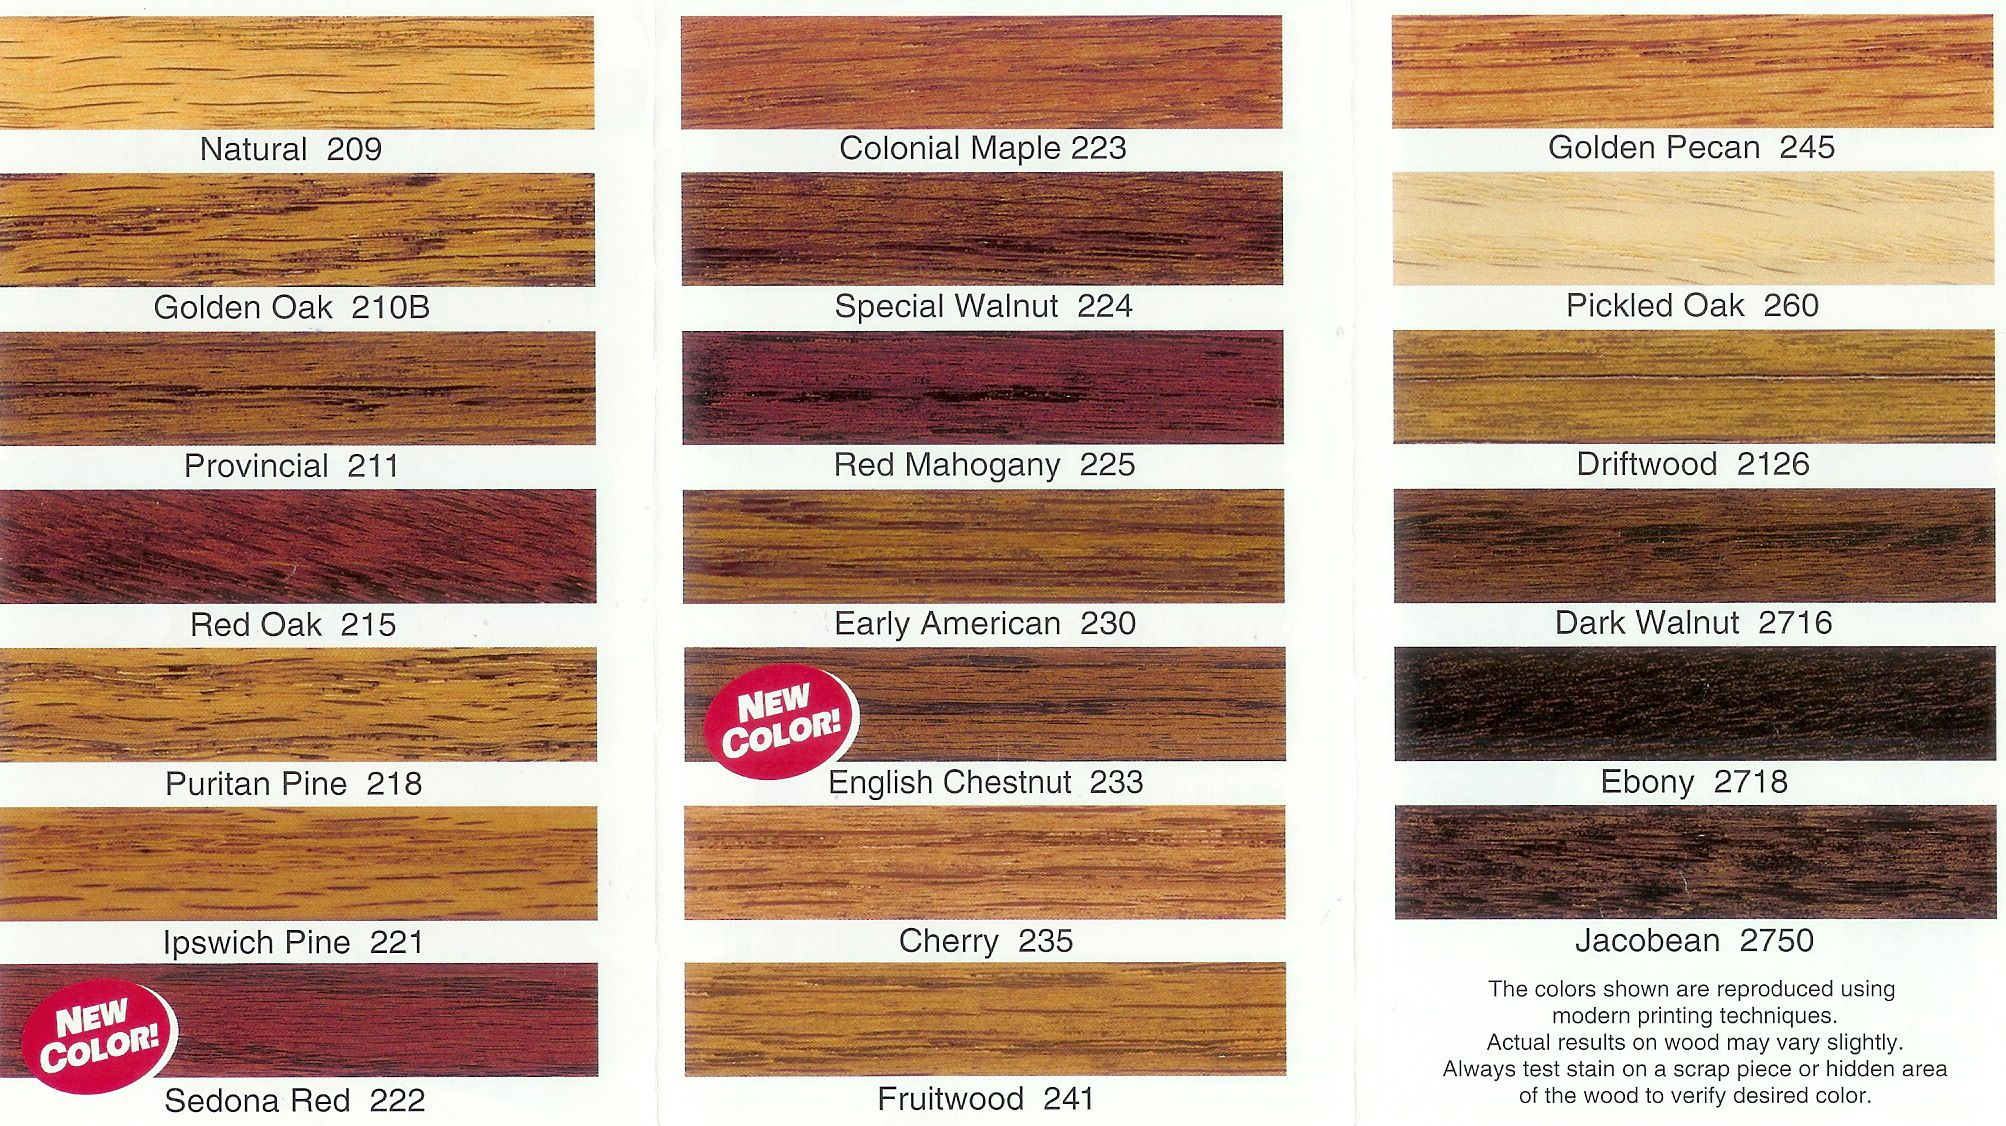 Minwax floor stain color choices take cherry 235 perhaps for Hardwood floors stain colors